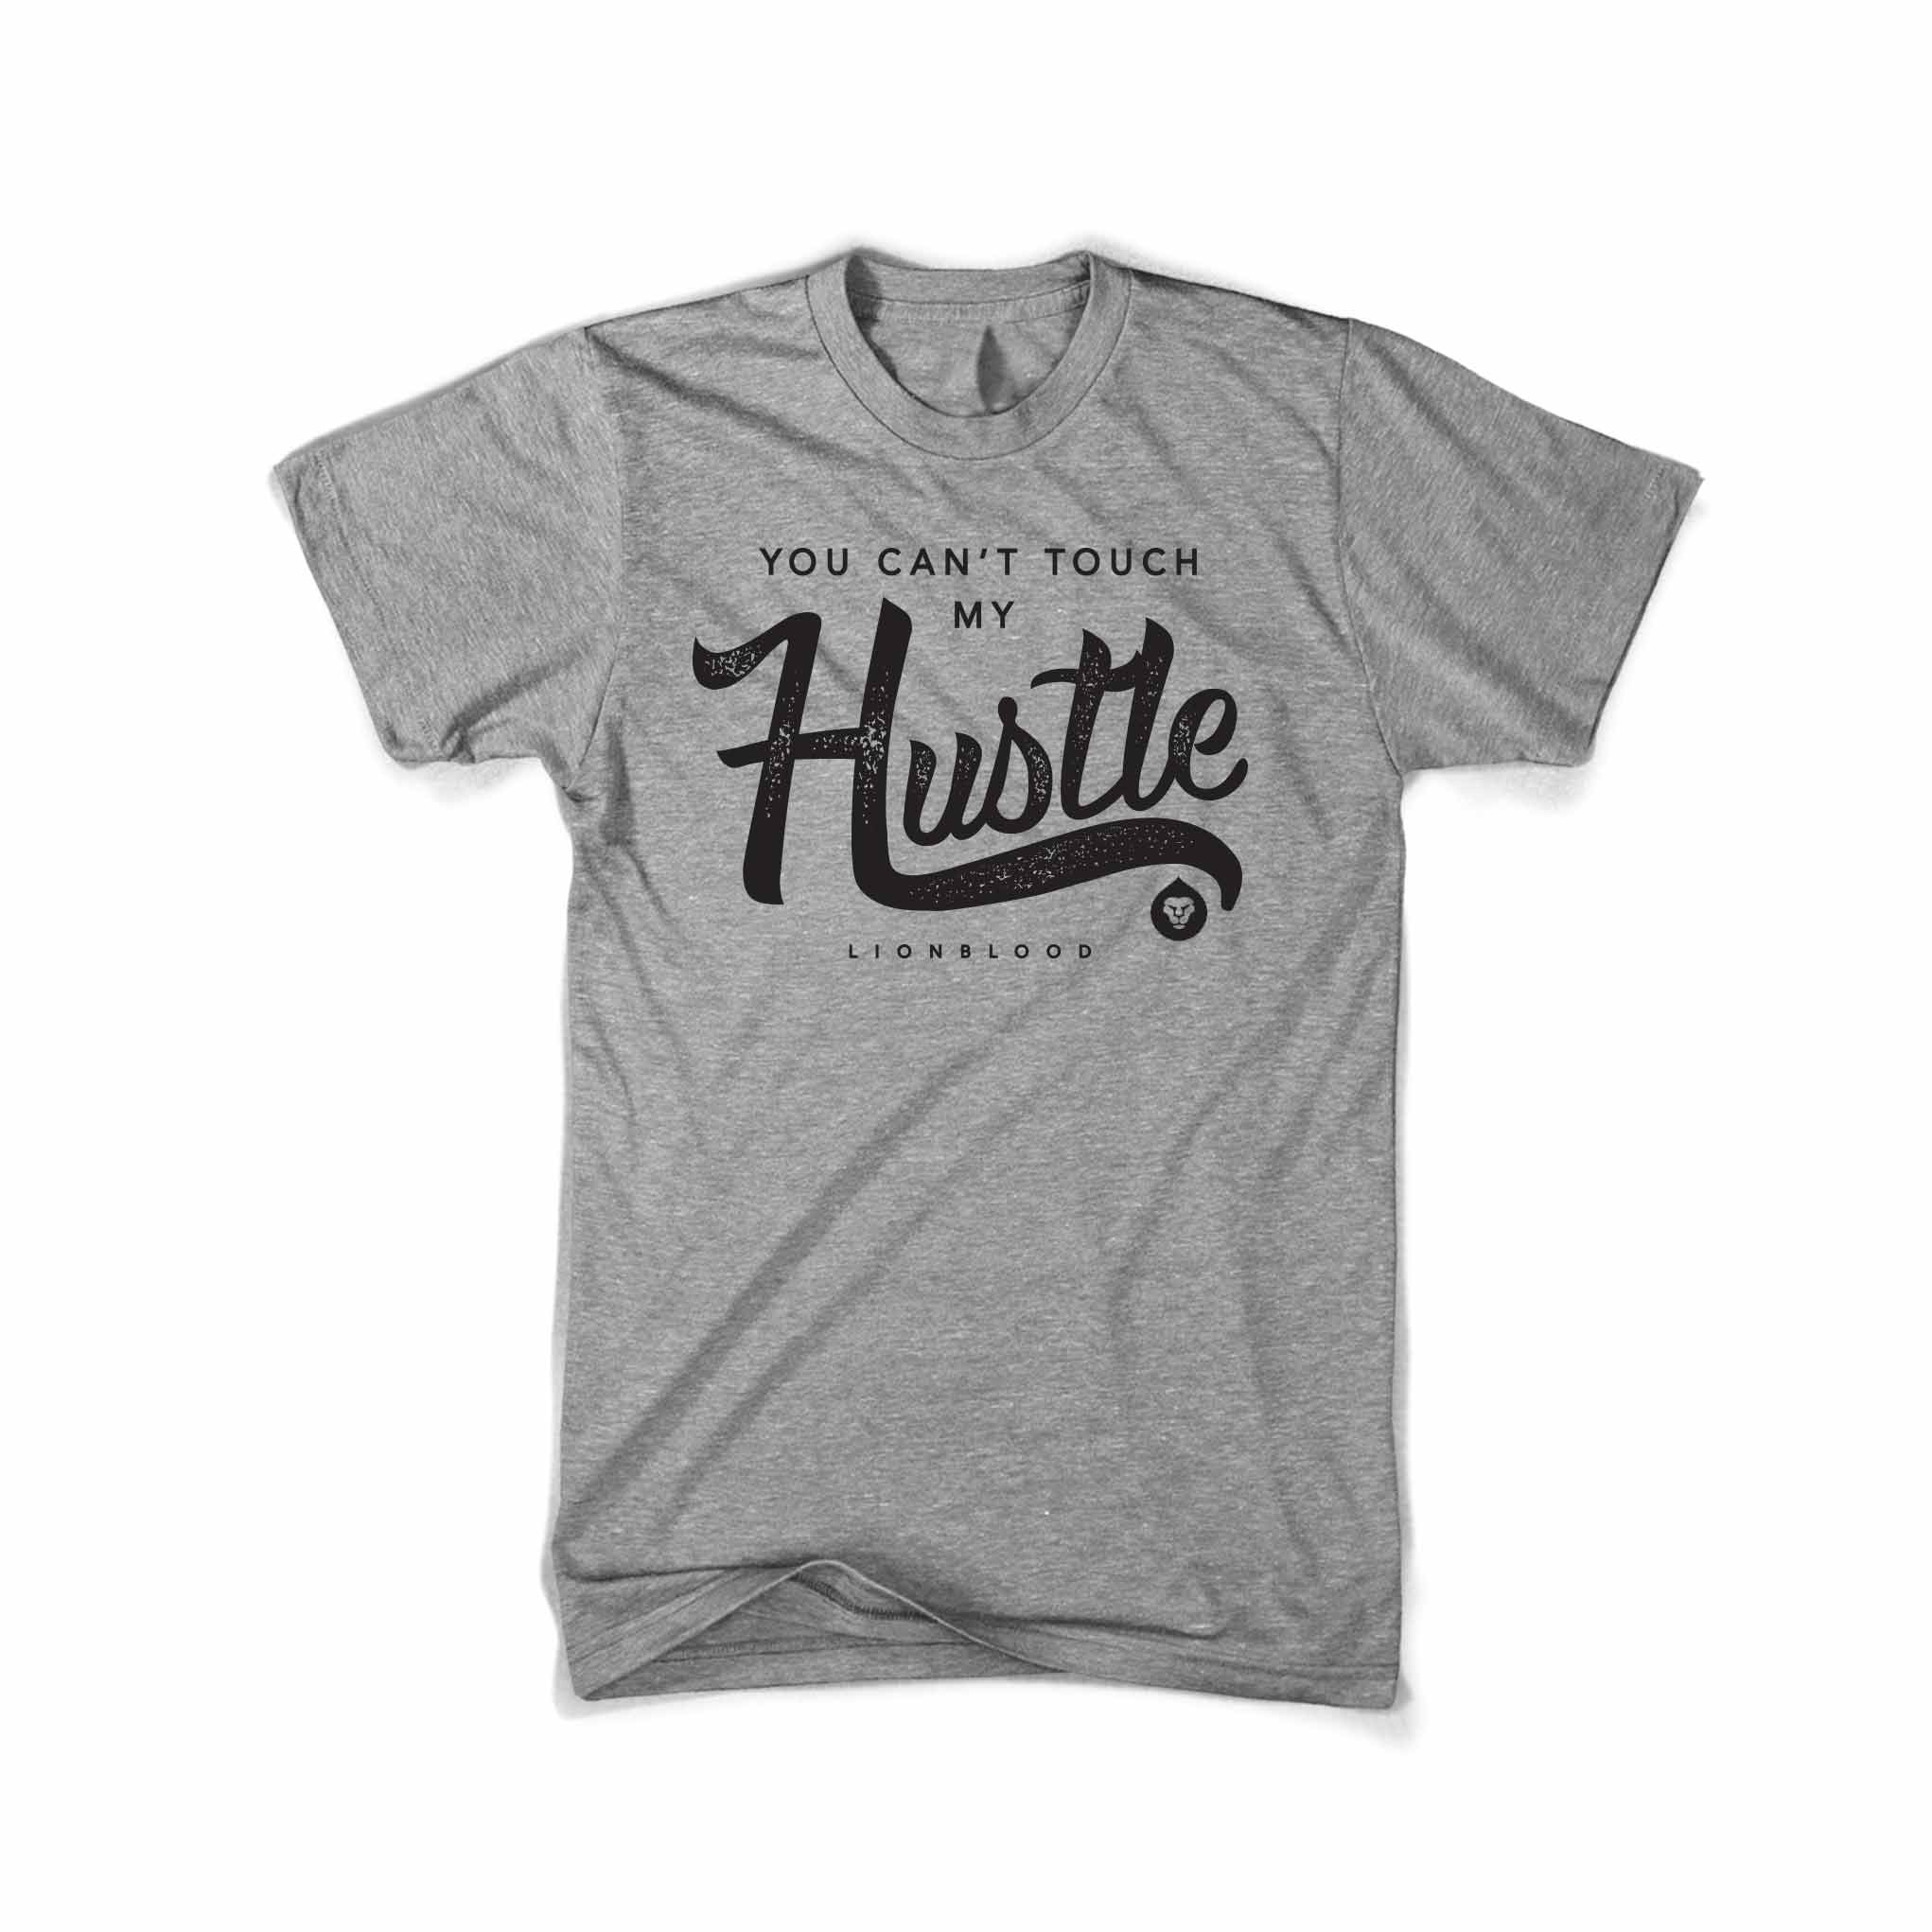 TOUCH HUSTLE